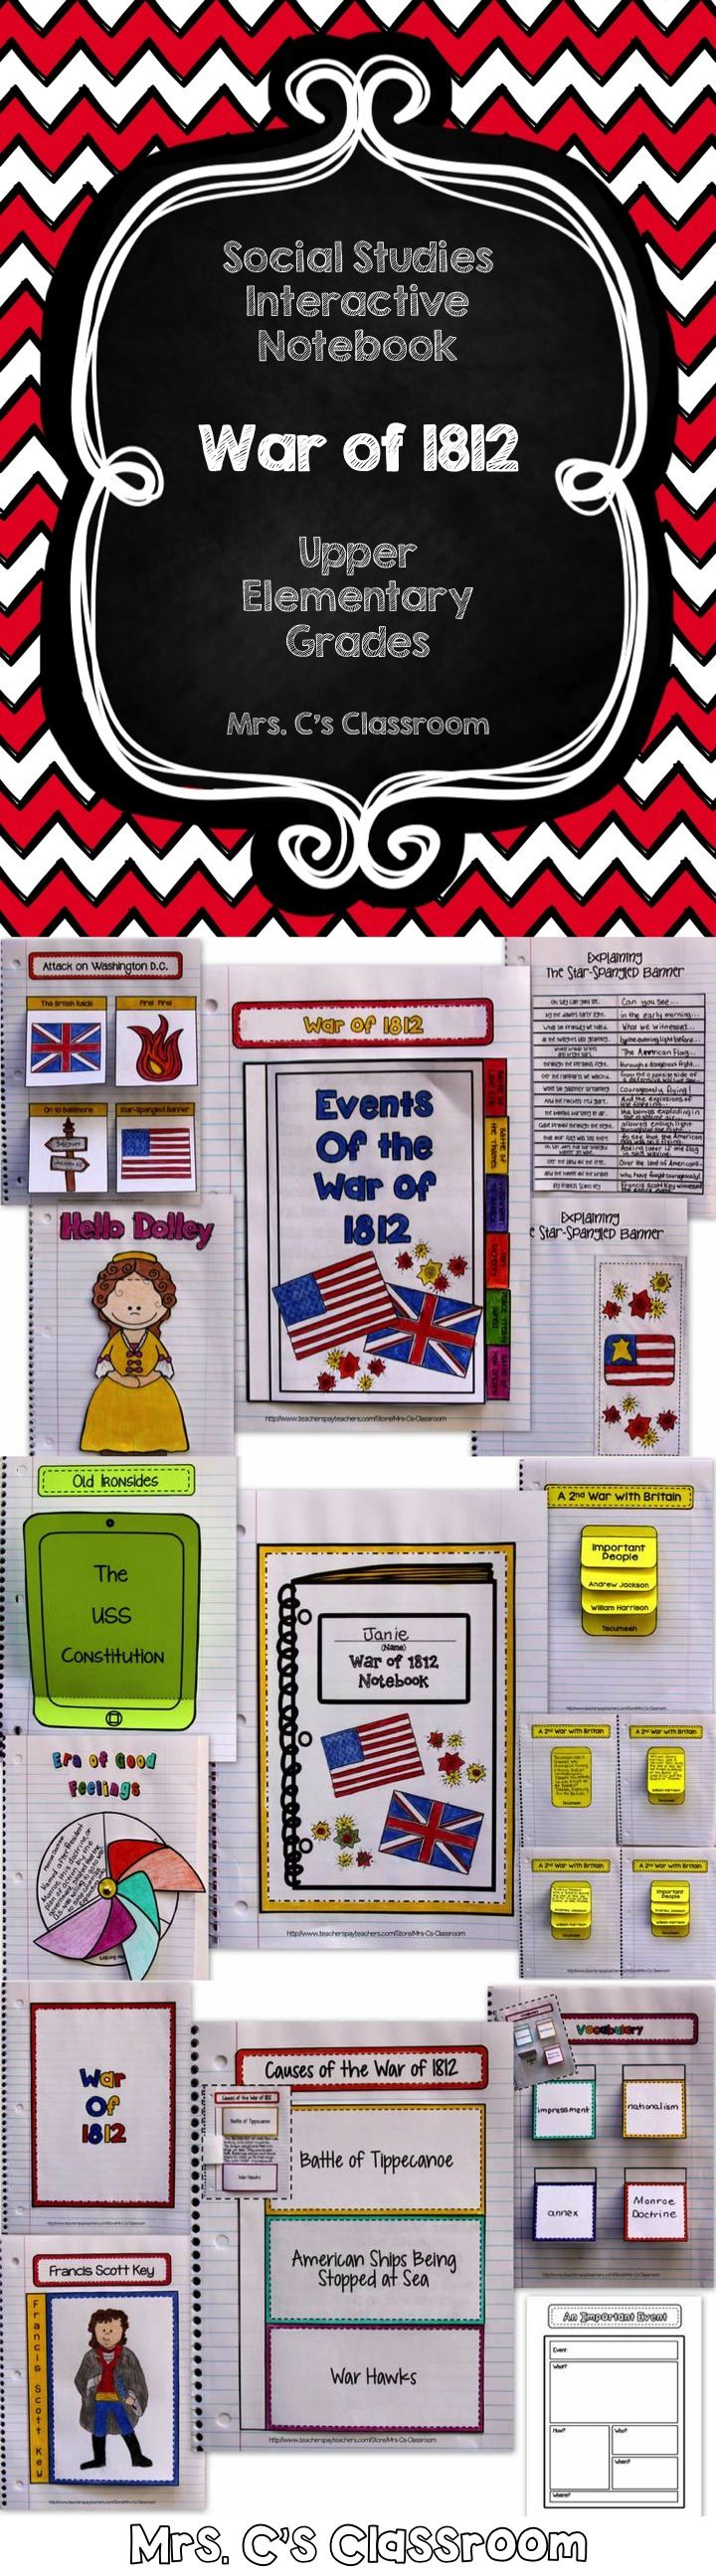 This interactive notebook covers the War of 1812, including the causes of the war, important battles, events, people, the Star-Spangled Banner, and more. $